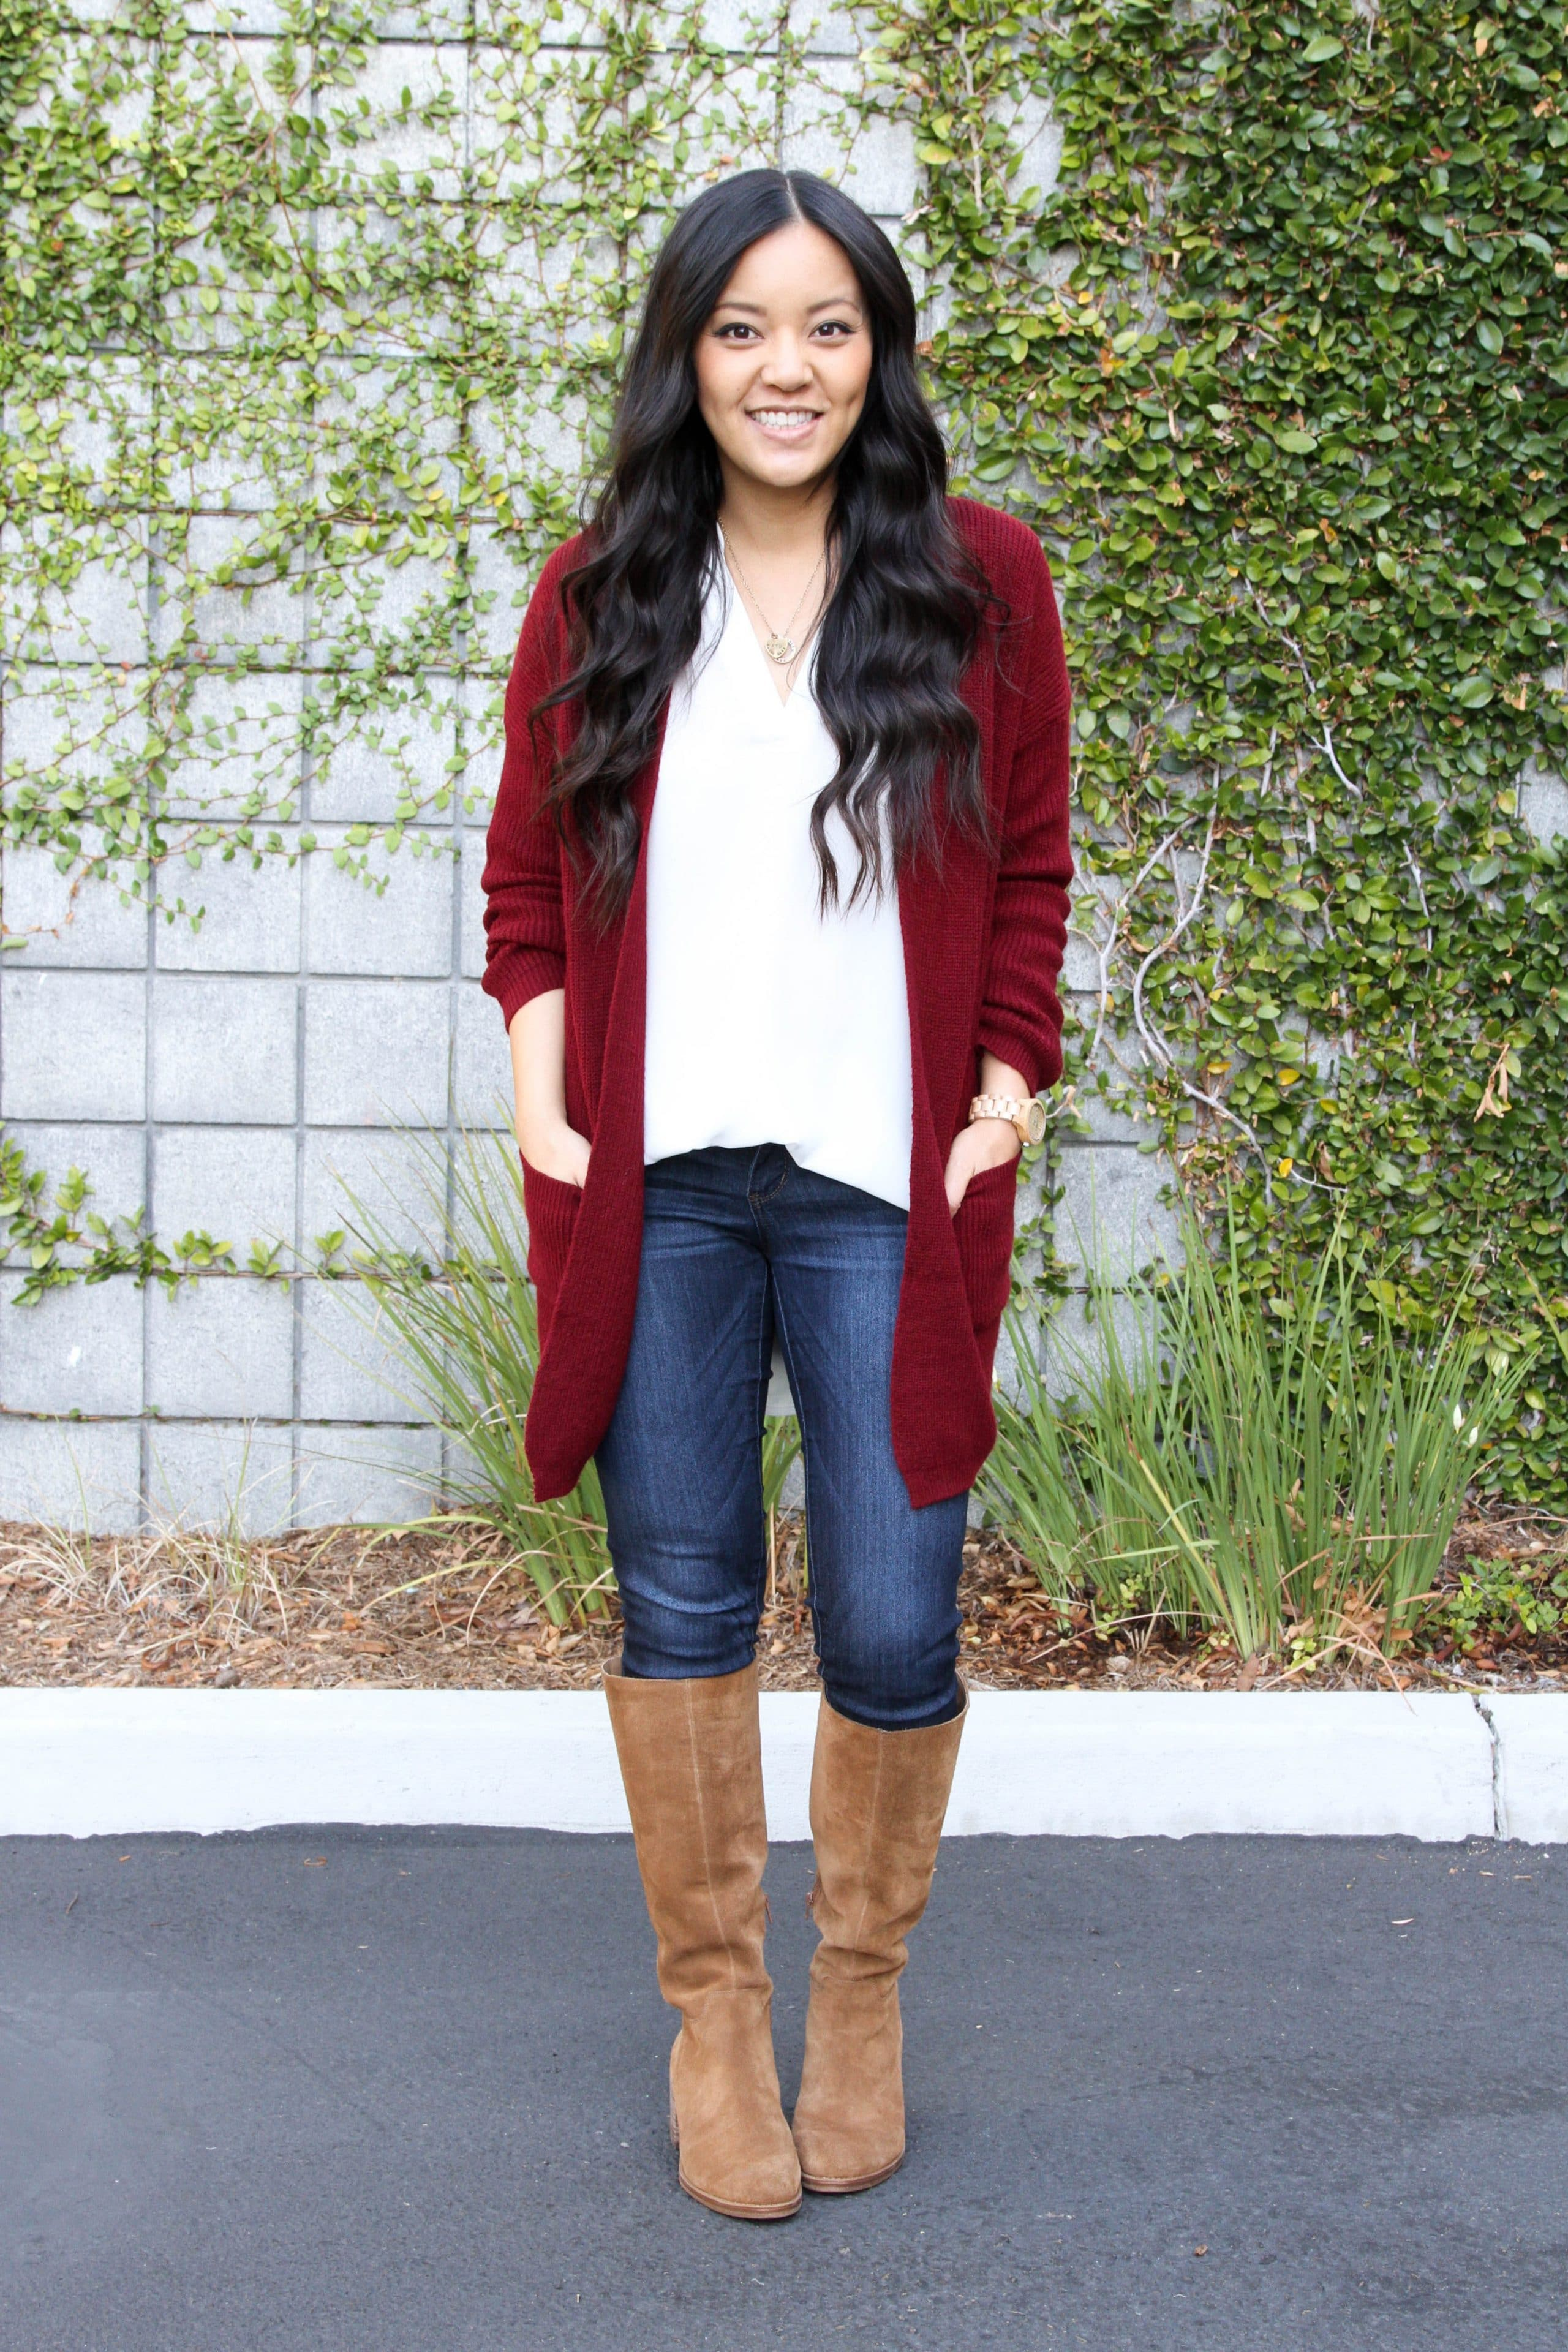 white top maroon cardigan tan suede boots outfit 01